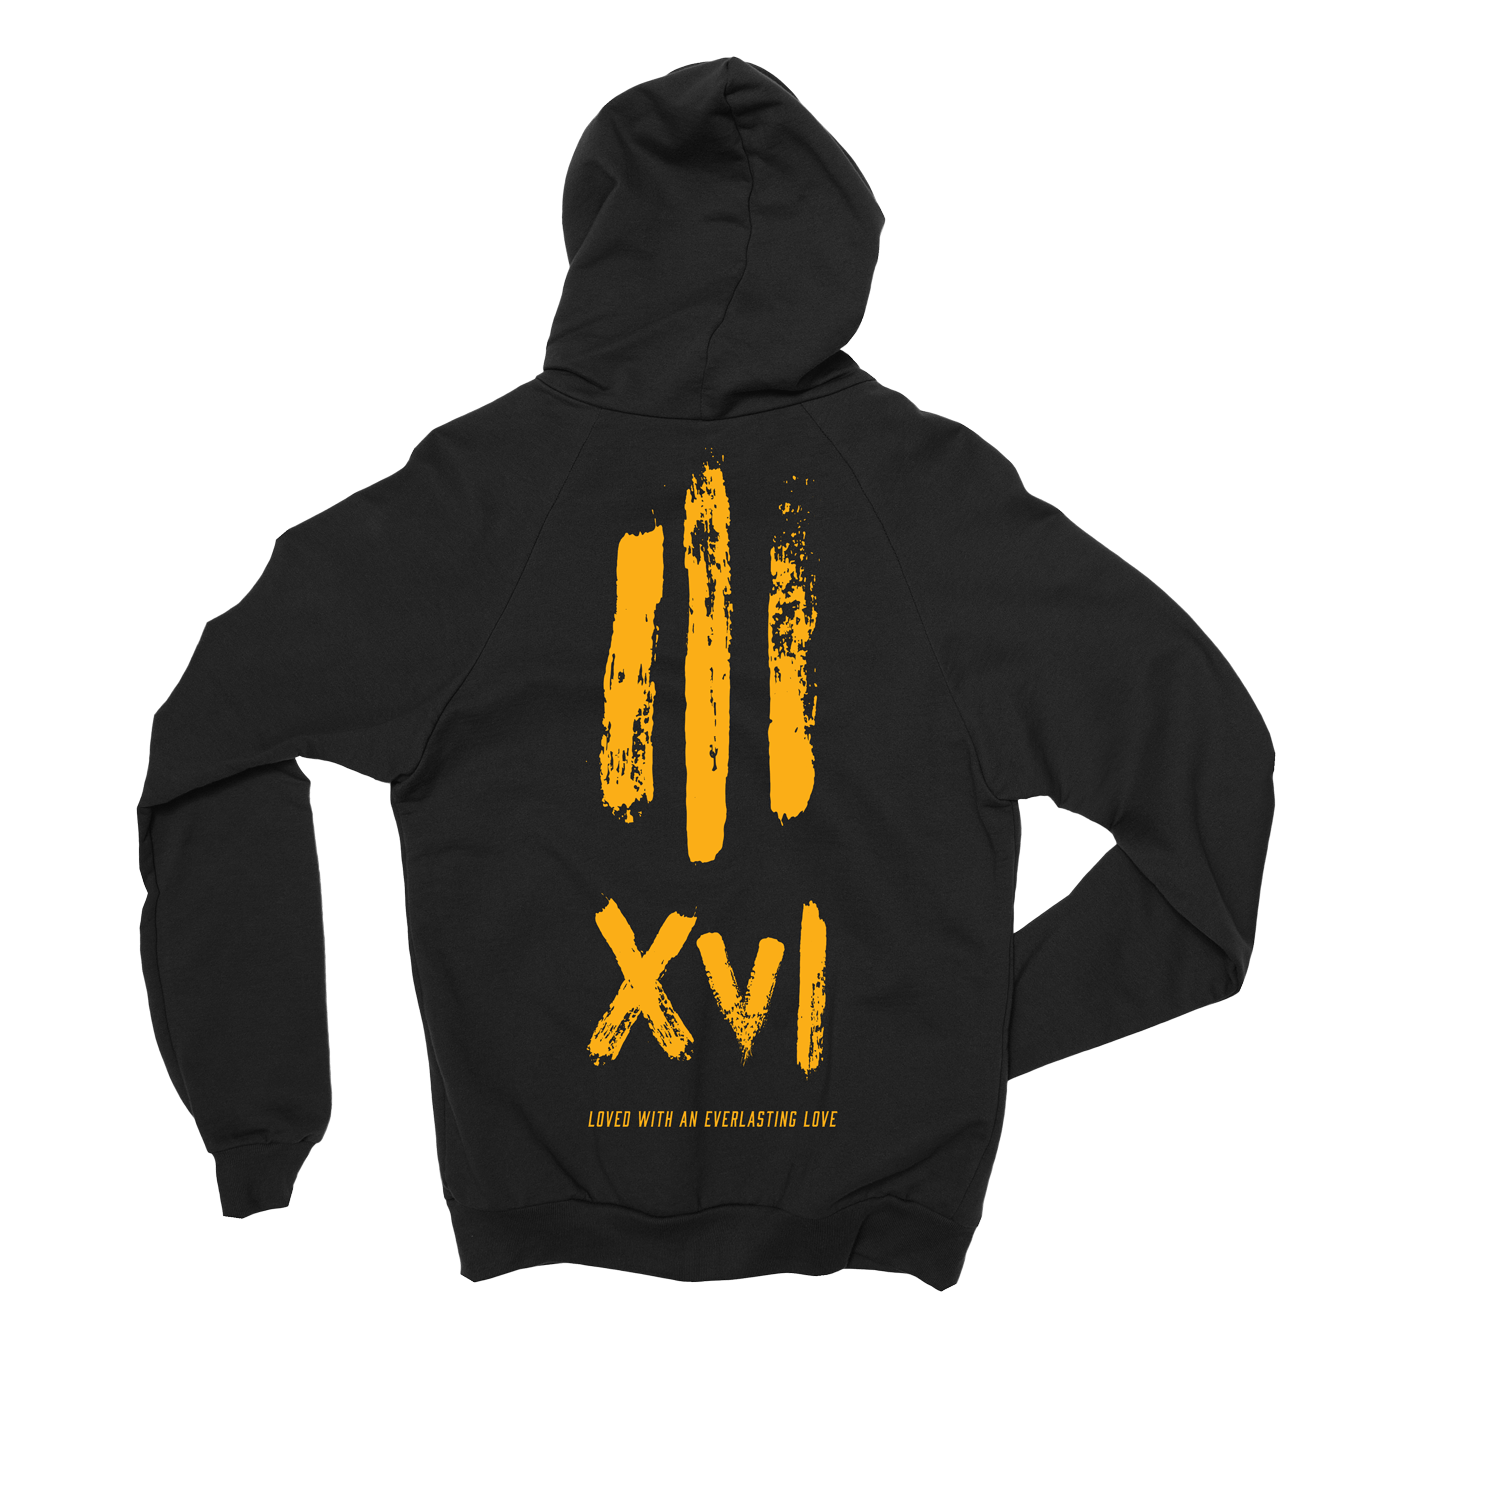 John 3:16 Hoodie - Beacon Threads -  - 2